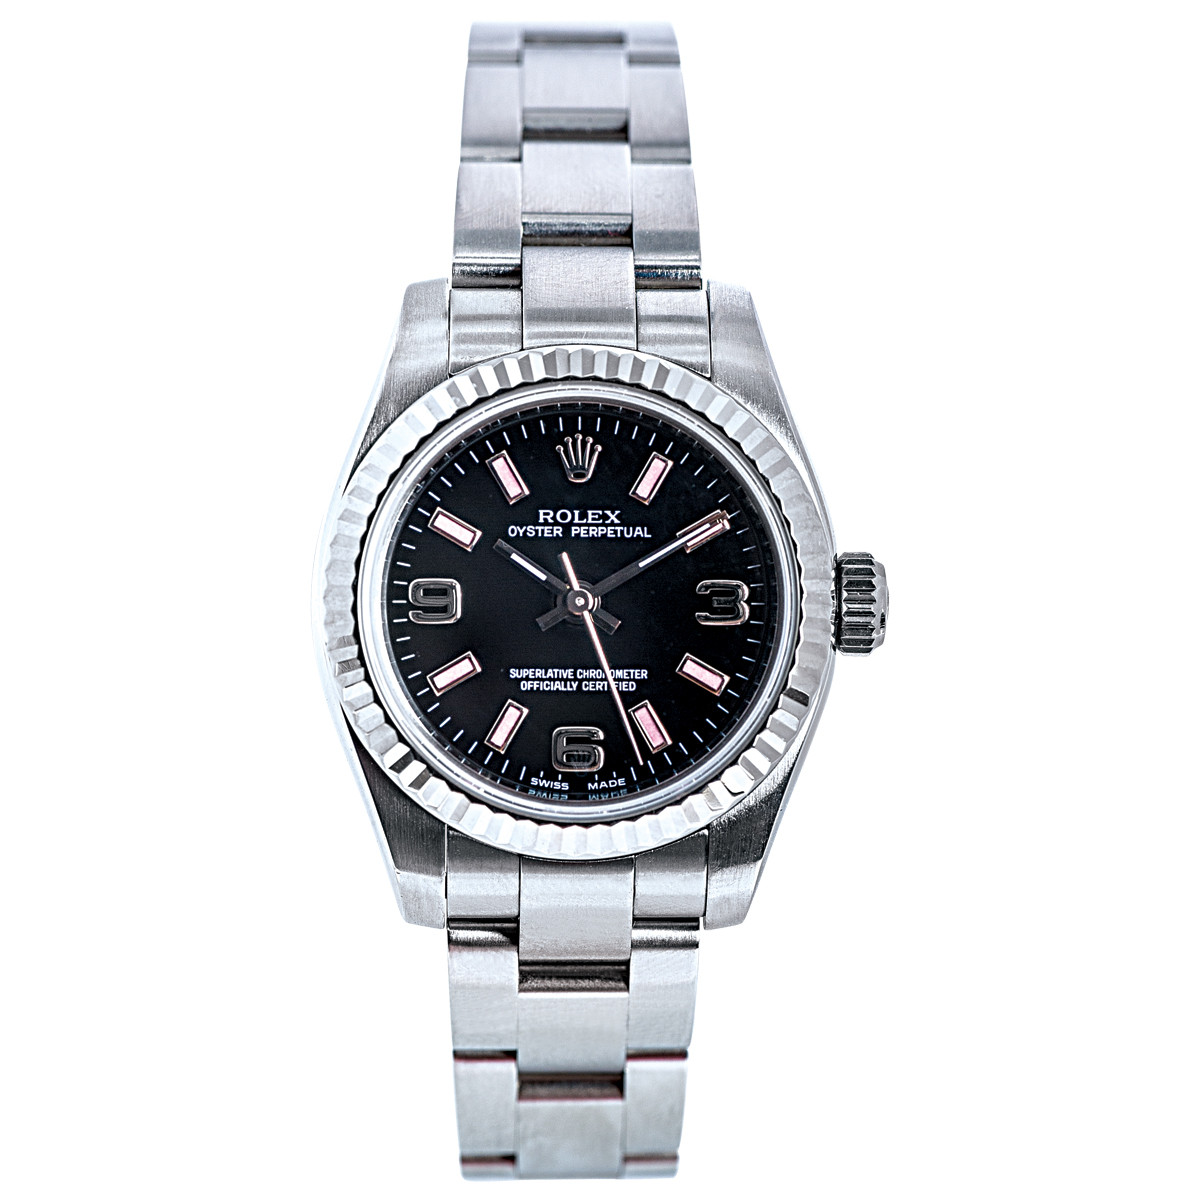 Preowned Women's Rolex Oyster Perpetual with Black Dial